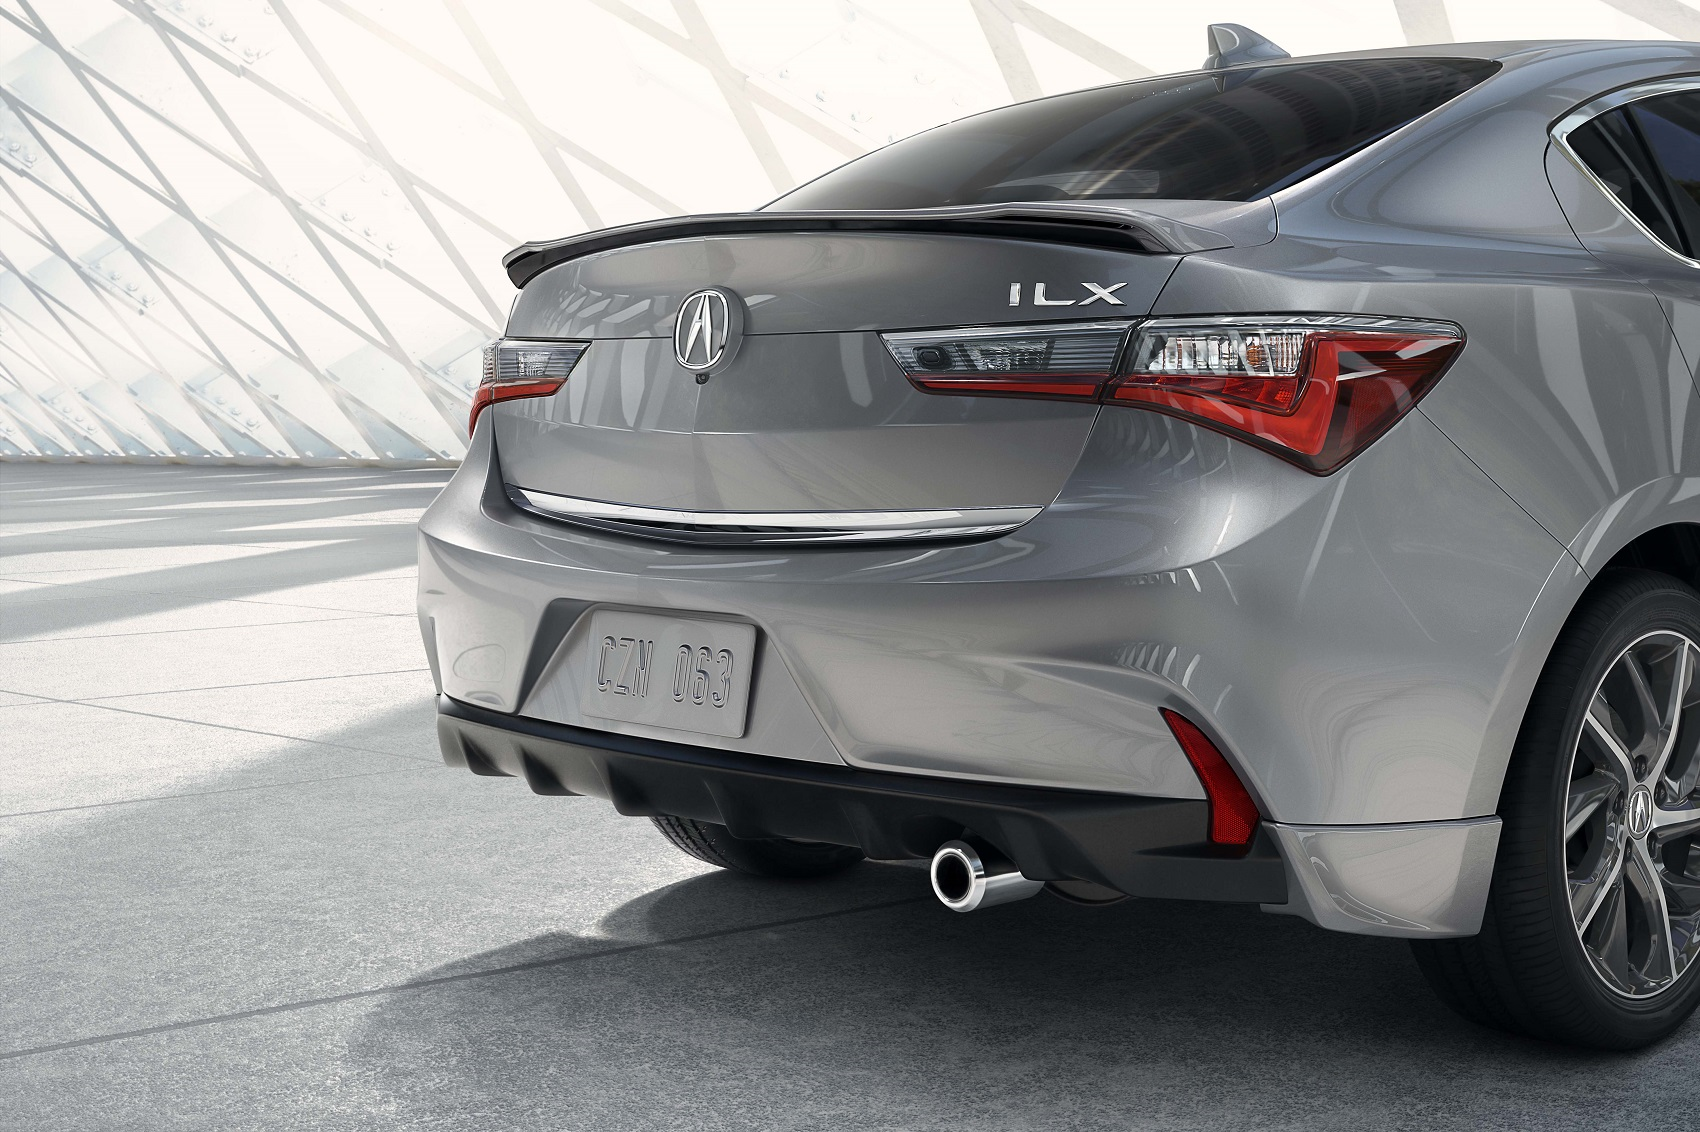 2019 Acura IlX Models near East Greenwich RI